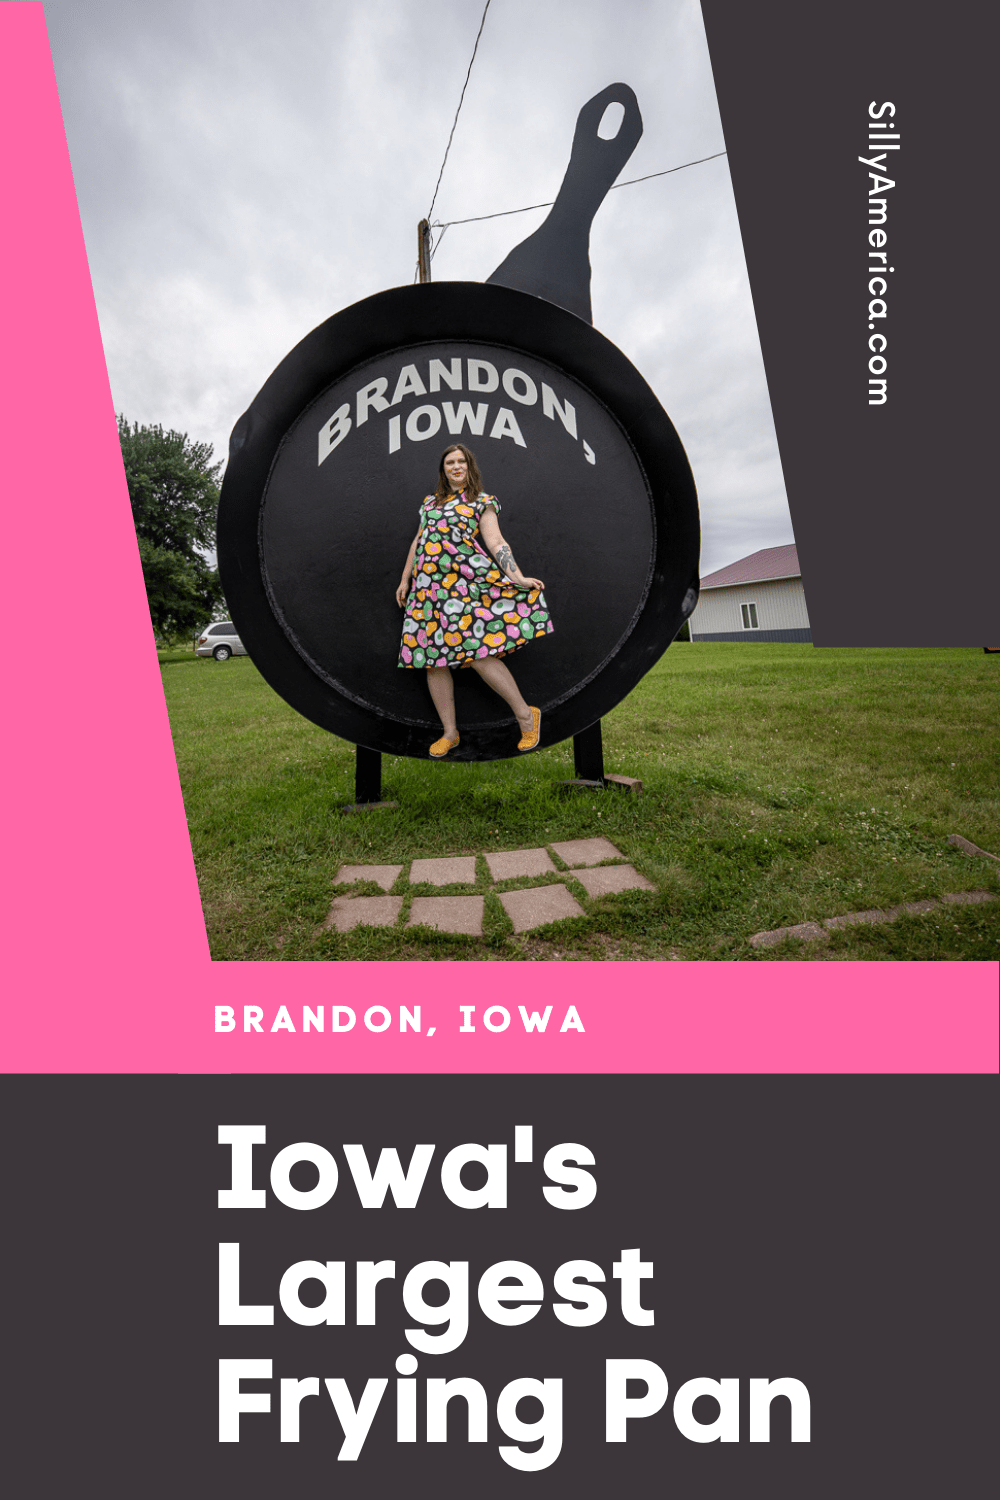 Iowa's Largest Frying Pan in Brandon, Iowa could cook 528 eggs, 352 pork chops, or 88 pounds of bacon. That's a lot of bacon! This roadside attraction is a must see stop on an Iowa road trip. Be sure to save room for a Cowboy Breakfast if you travel in September!  #IowaRoadsideAttractions #IowaRoadsideAttraction #RoadsideAttractions #RoadsideAttraction #RoadTrip #IowaRoadTrip #IowaThingsToDo #IowaRoadTripBucketLists #IowaBucketList #IowaRoadTripIdeas #IowaTravel